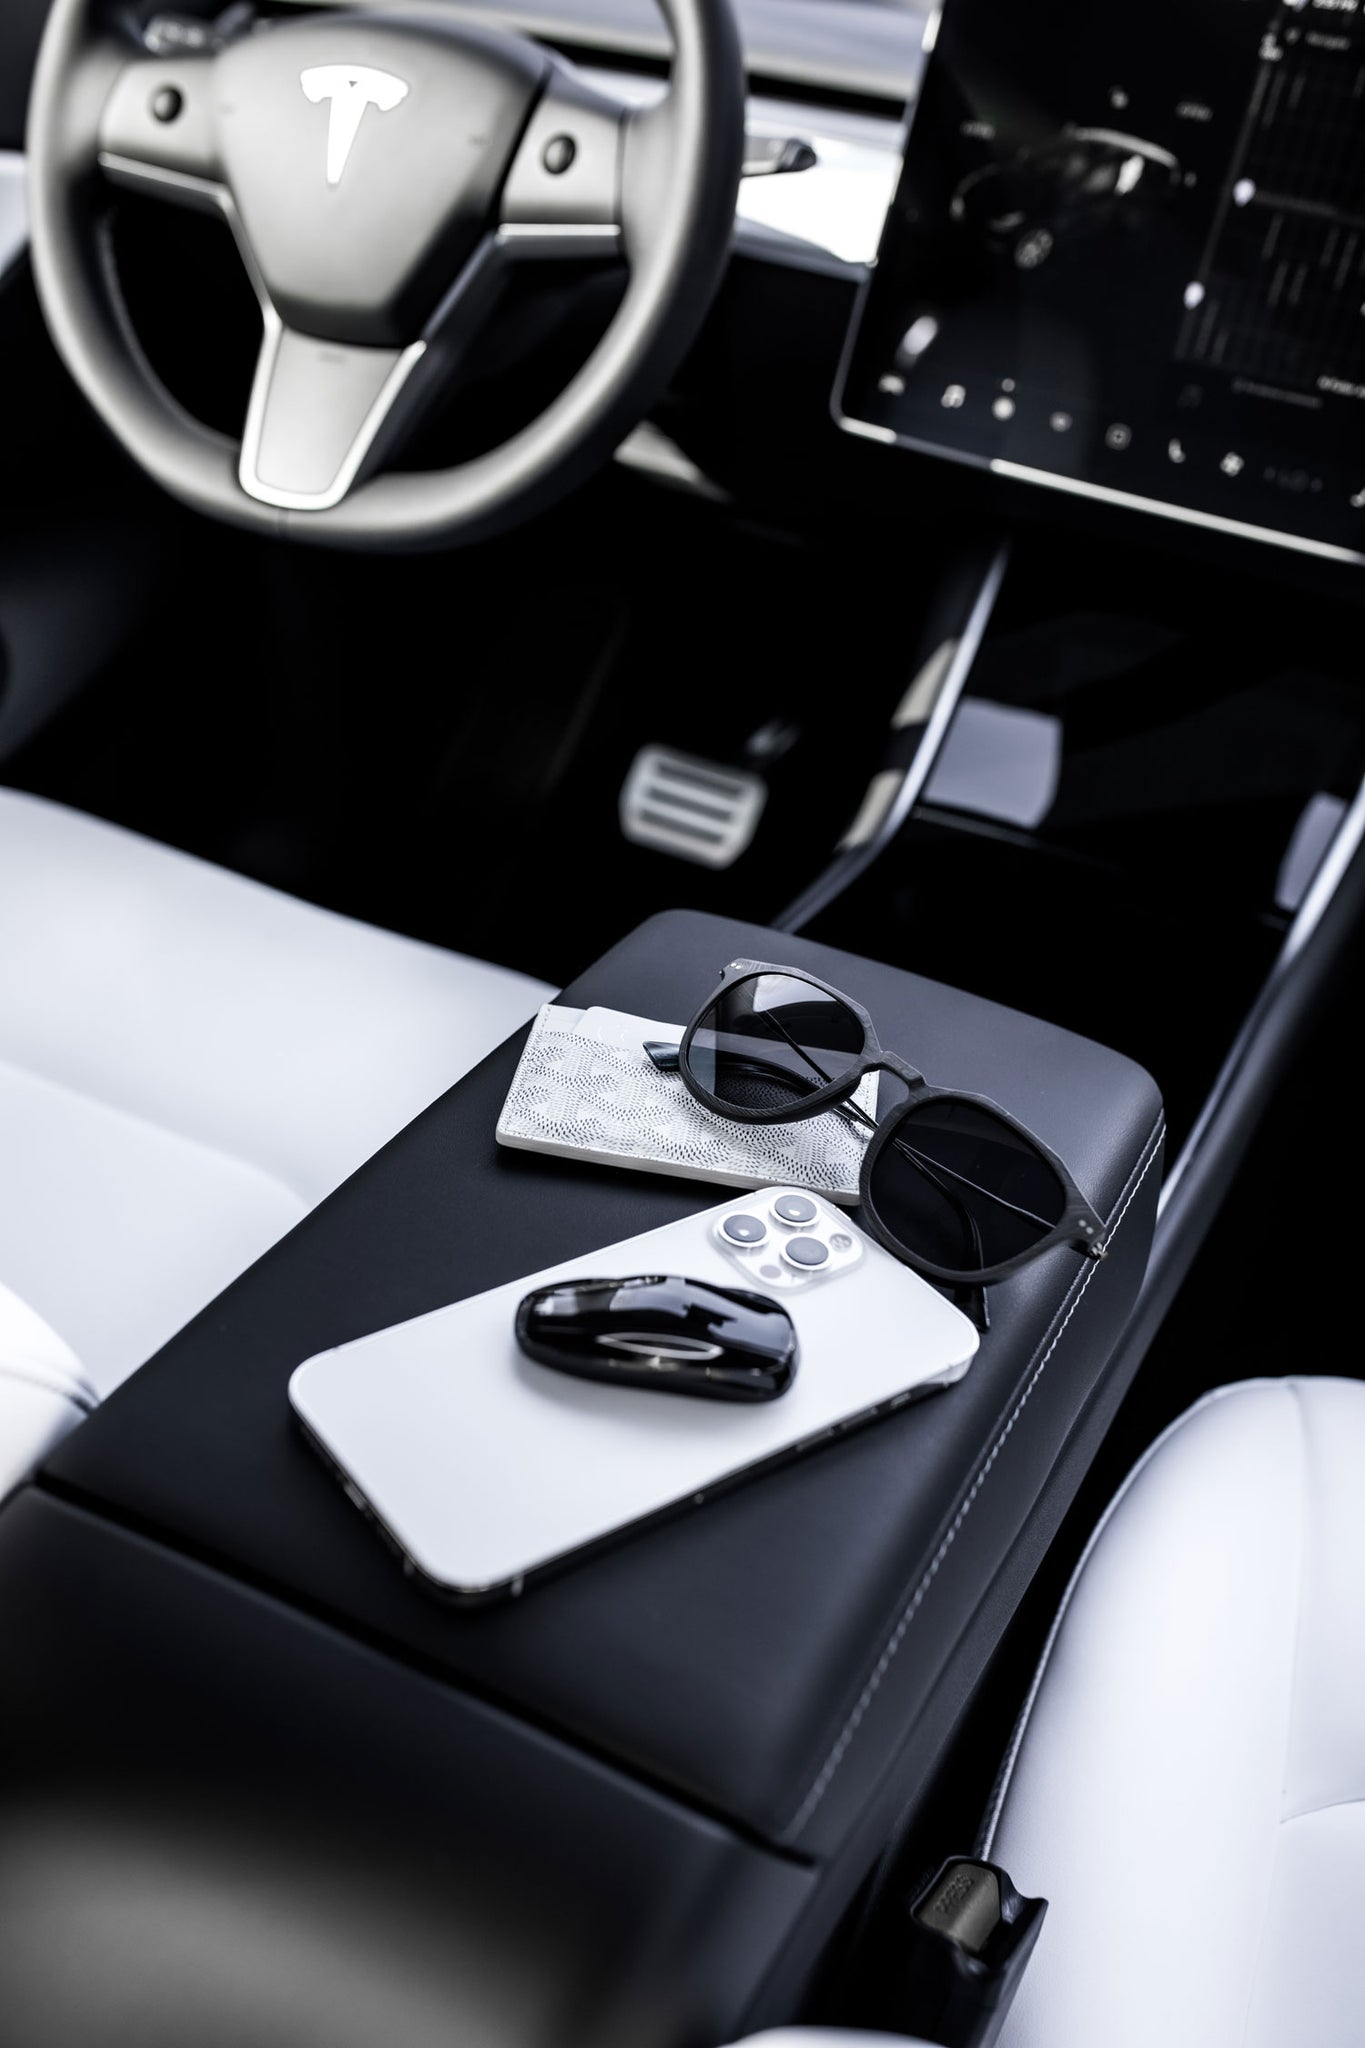 Photoshoot interior of Tesla Model Y for Roveri Eyewear clm7 men sunglasses and Goyard card holder, iPhone 12 max by paid2shoot.